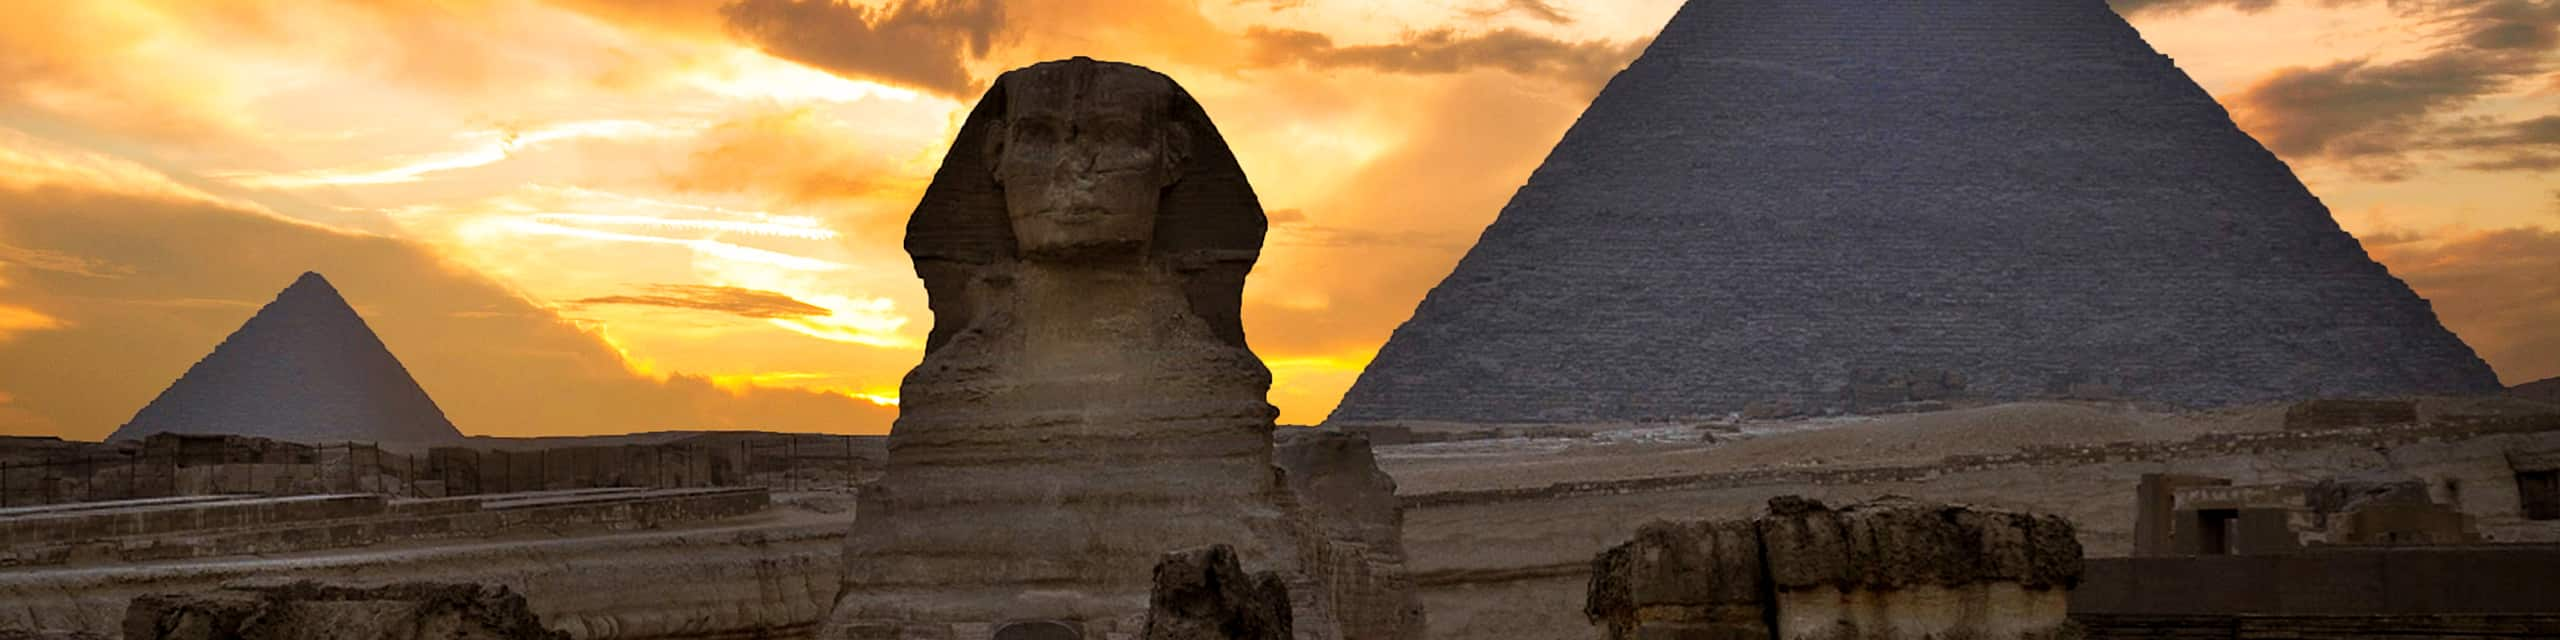 The Sphinx sits between 2 pyramids at sunset beneath a cloudy sky